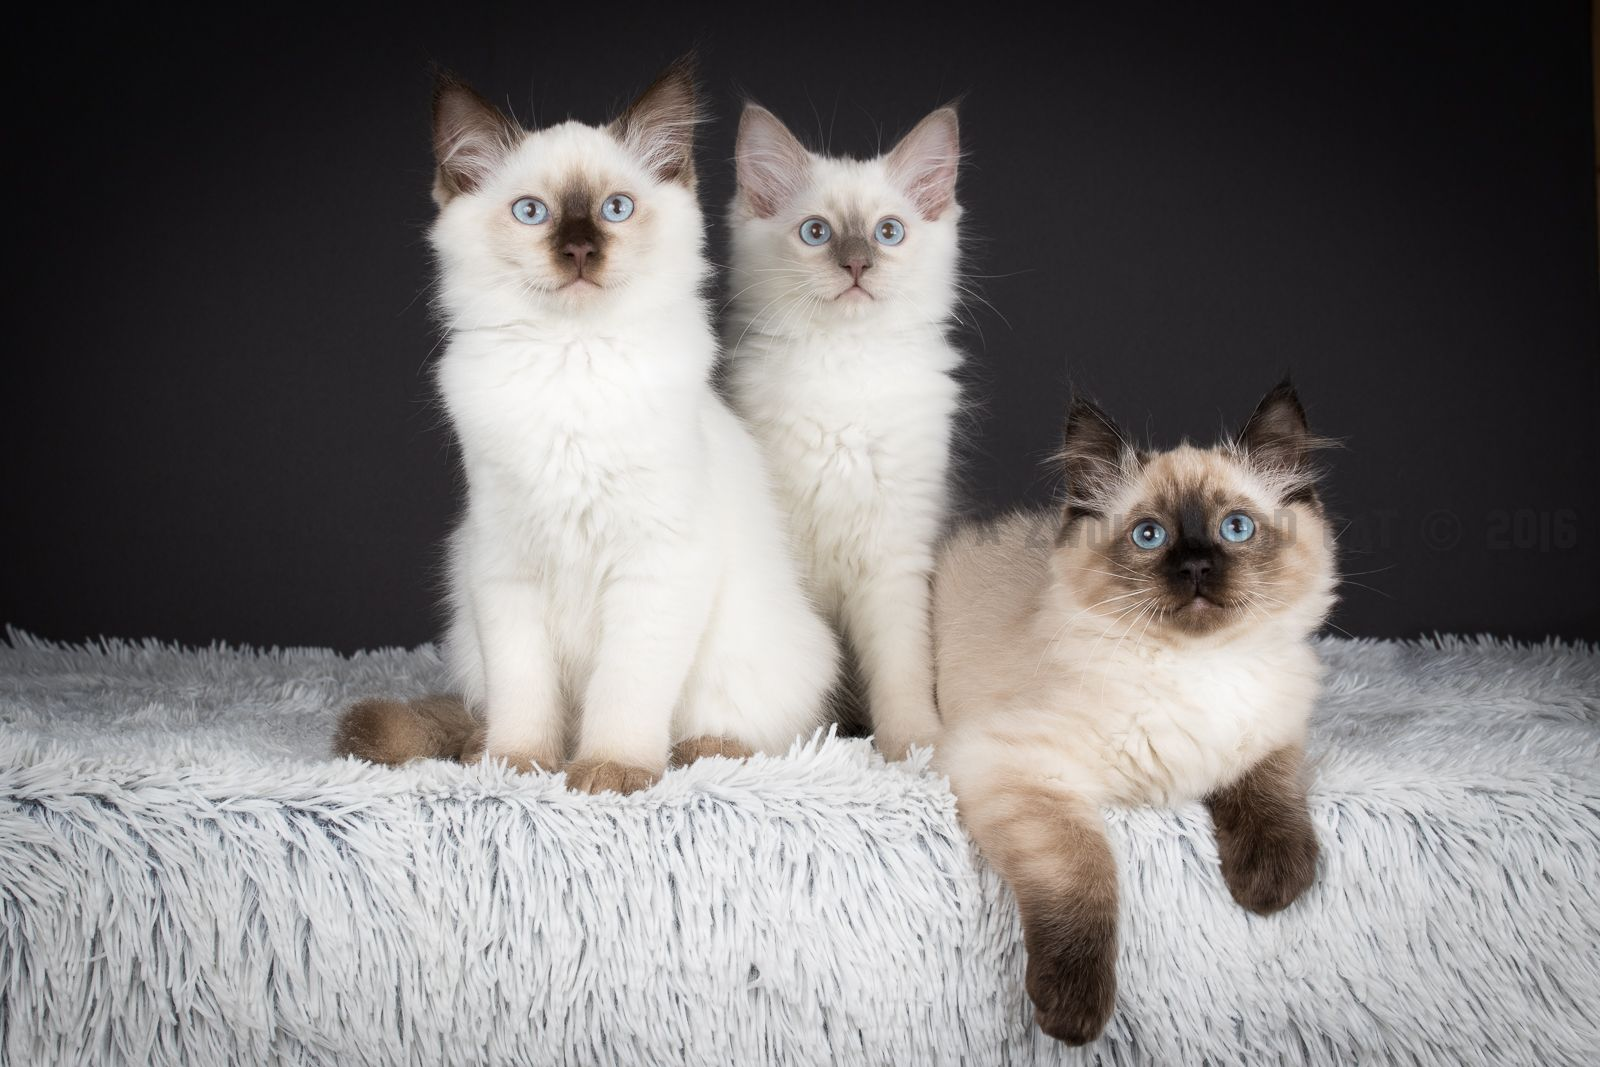 2016 Ragdoll Kittens From The Flintstones Litter At 12 Weeks Old Bamm Bamm A Chocolate Colourpoint Barney Rubble A Lilac Colourpoint And Dino A Seal Colou